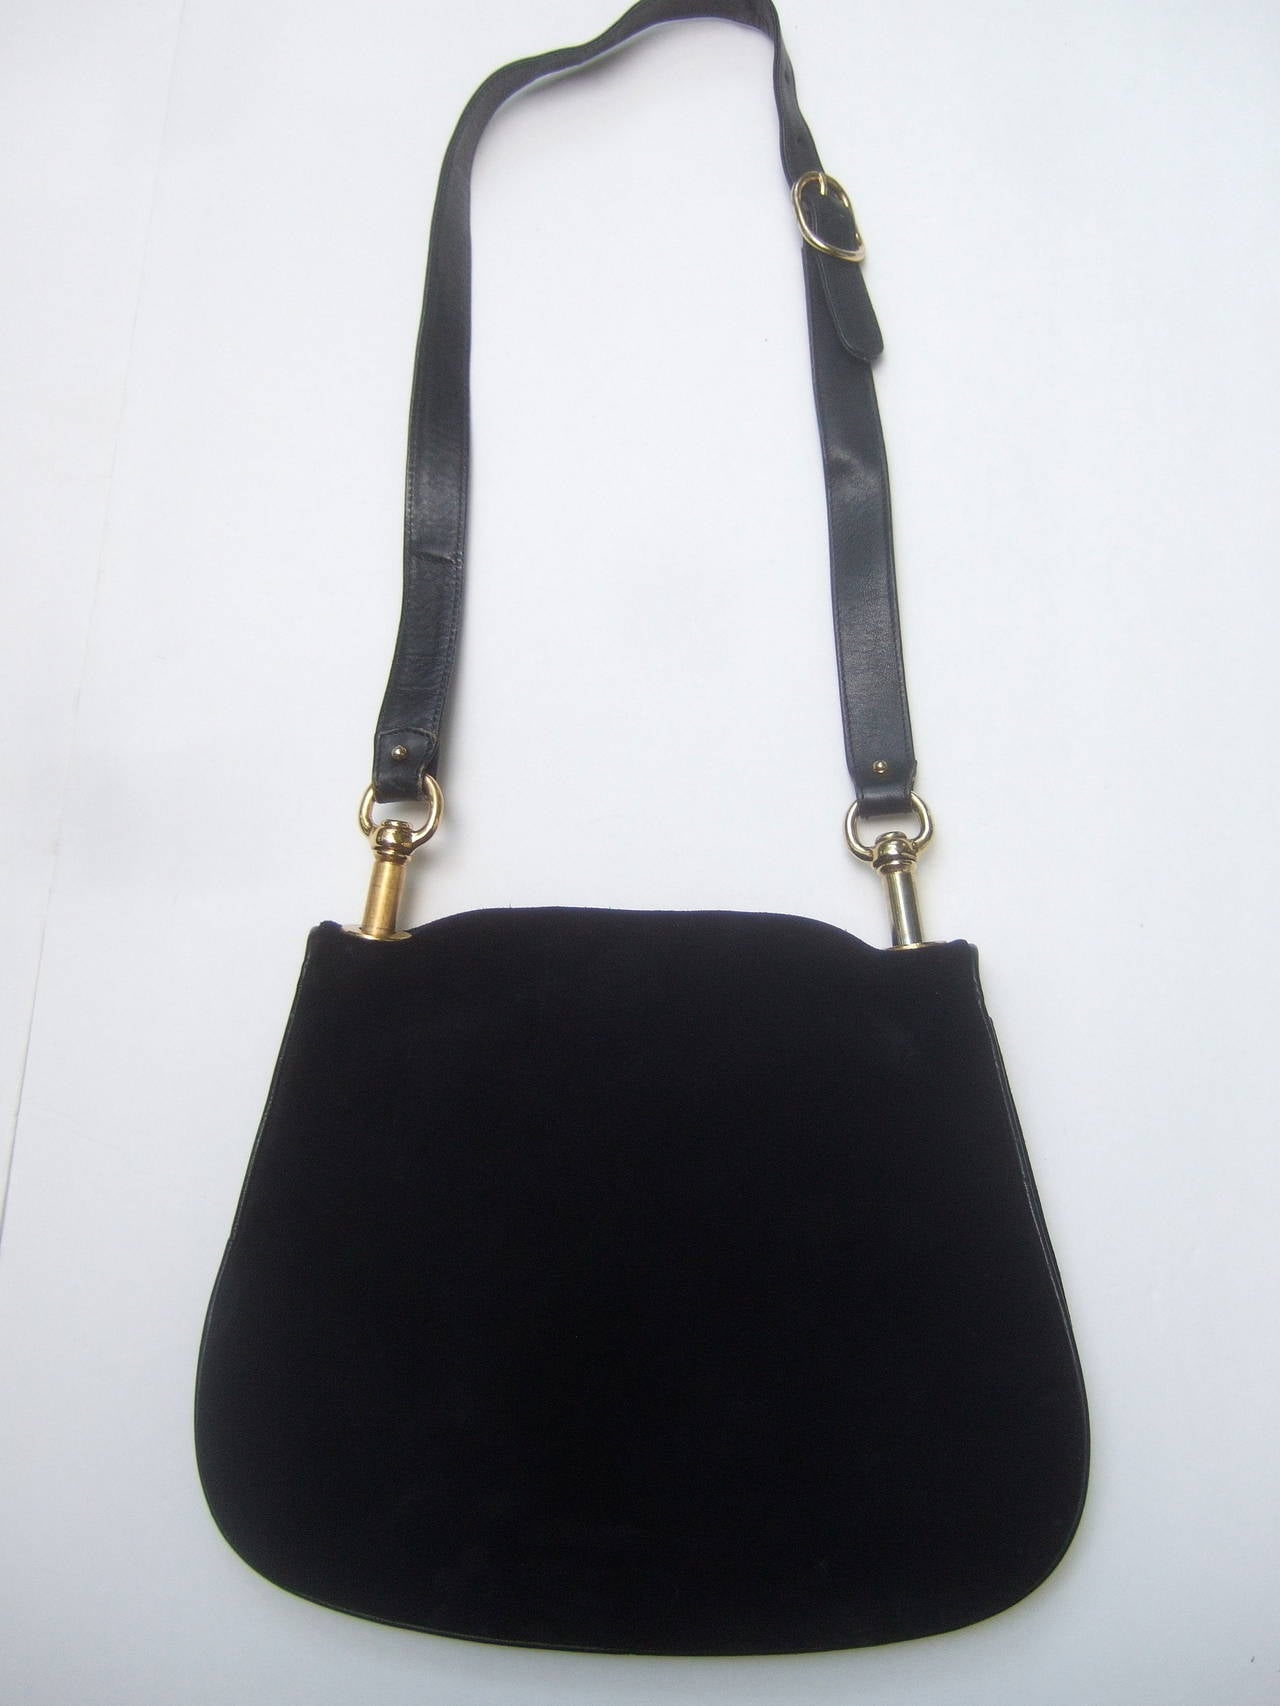 f94f7b684fe5 Gucci Bags Sale In Italy | Stanford Center for Opportunity Policy in ...